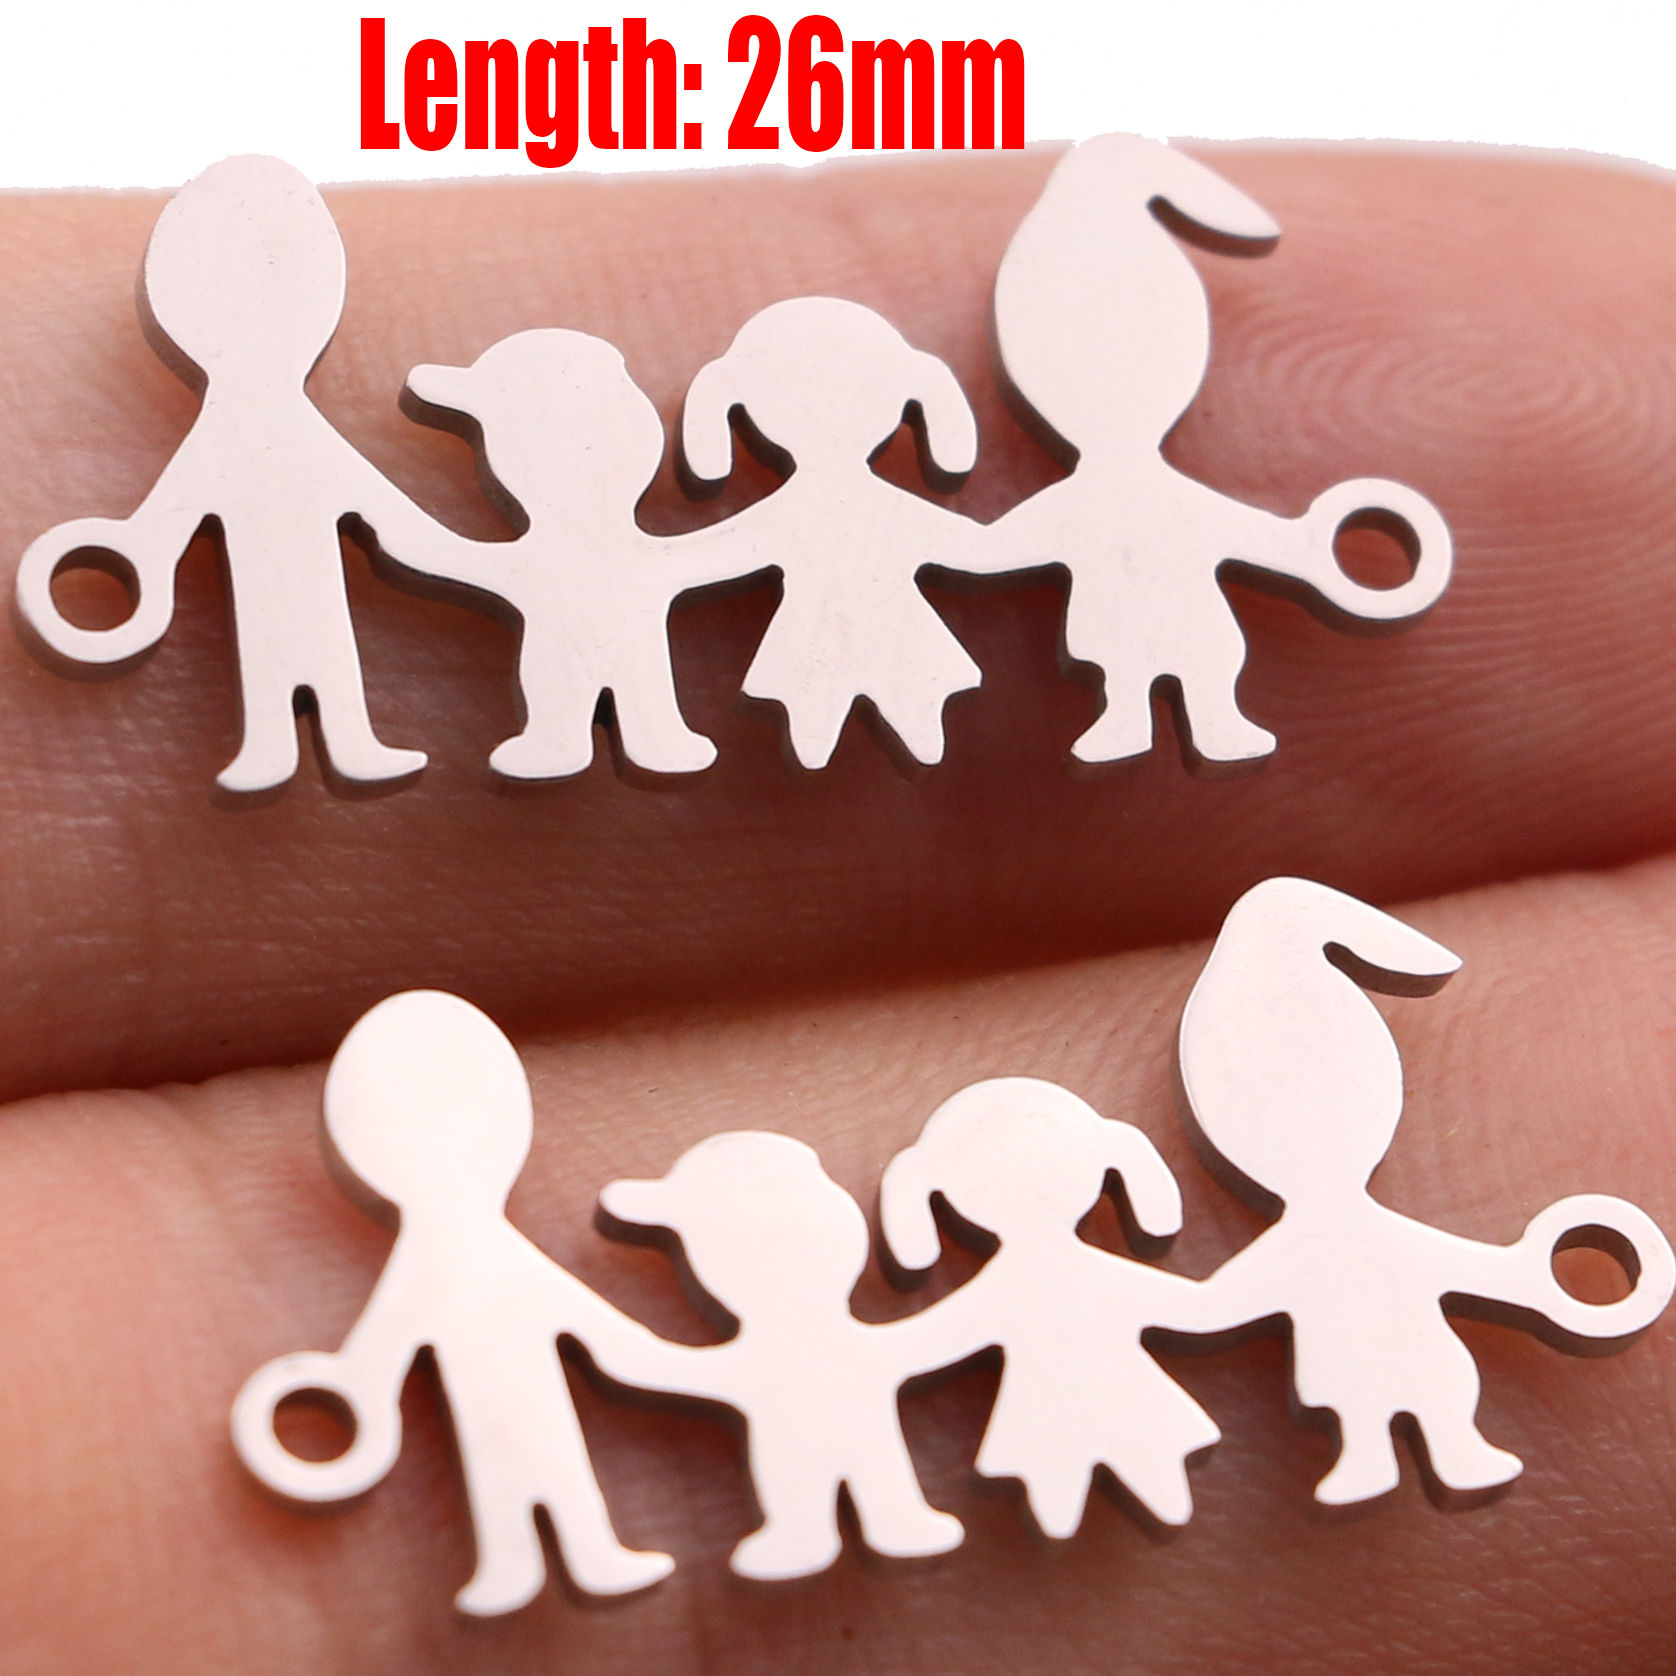 5pcs Family Chain Stainless Steel Pendant Necklace Parents and Children Necklaces Gold/steel Jewelry Gift for Mom Dad New Twice - Цвет: Steel 32